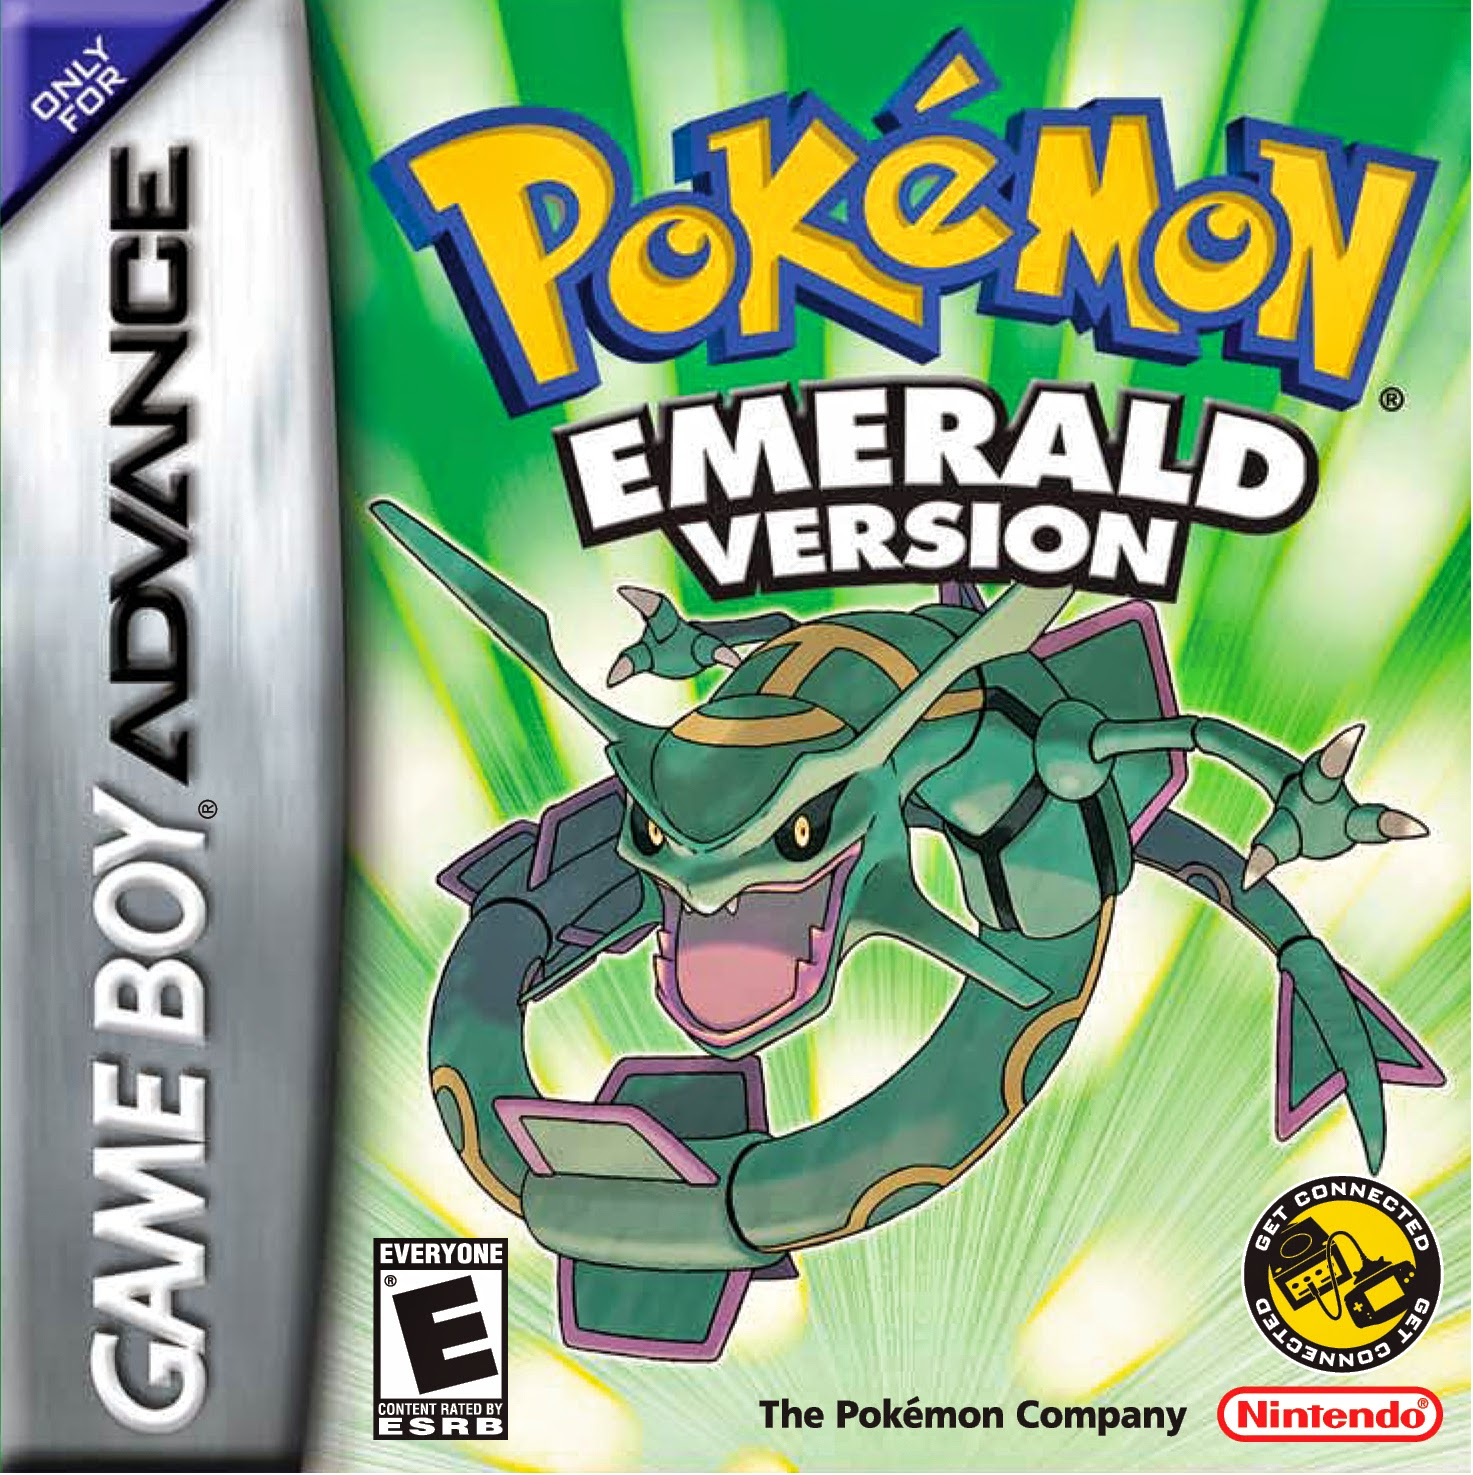 http://www.1mobile.com/pokemon---emerald-version-1045408.html